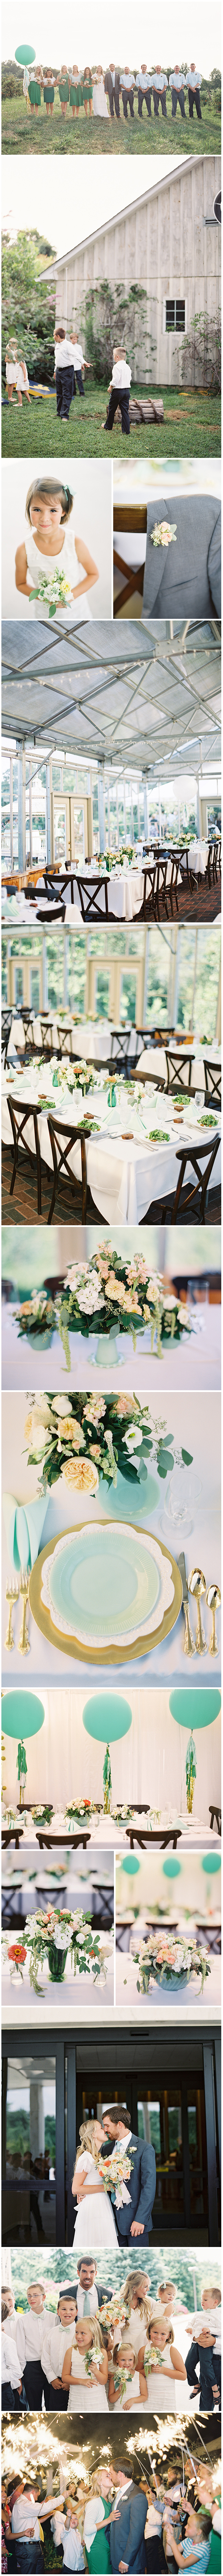 Though this was a relaxed, rustic affair,   the doting couple didn't skimp on style. From bud vases to balloons, a pale Tiffany blue boasted preeminence in the color palette, accentuated with coral,peach and barely there blushes and nudes. Vintage dishes layered on golden chargers at each place setting made lovelytablescape vignettes amidst clusters of fresh garden florals.  Images by Anne Robert.